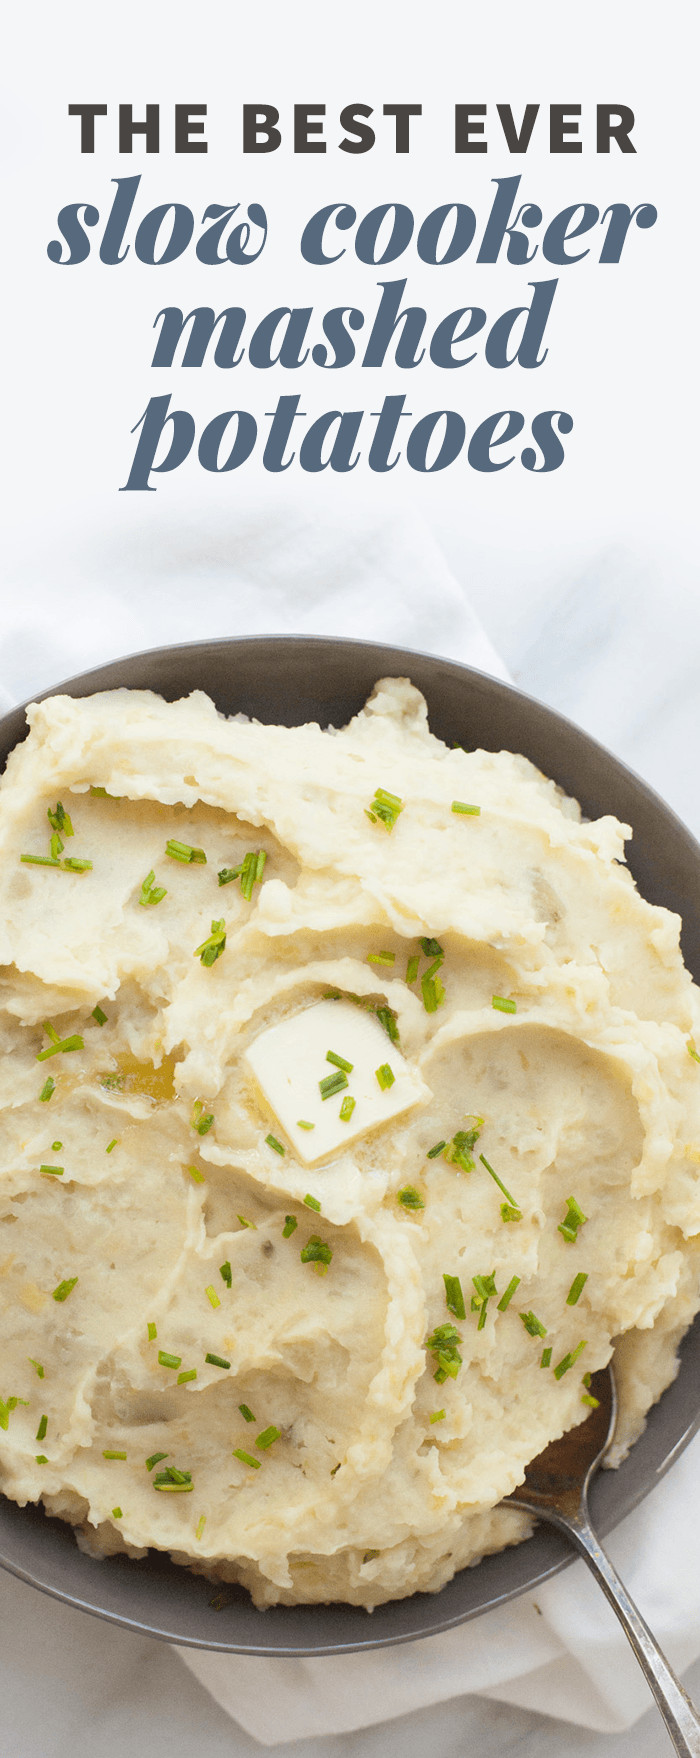 Best Thanksgiving Mashed Potatoes  The Best Ever Slow Cooker Mashed Potatoes Wholefully